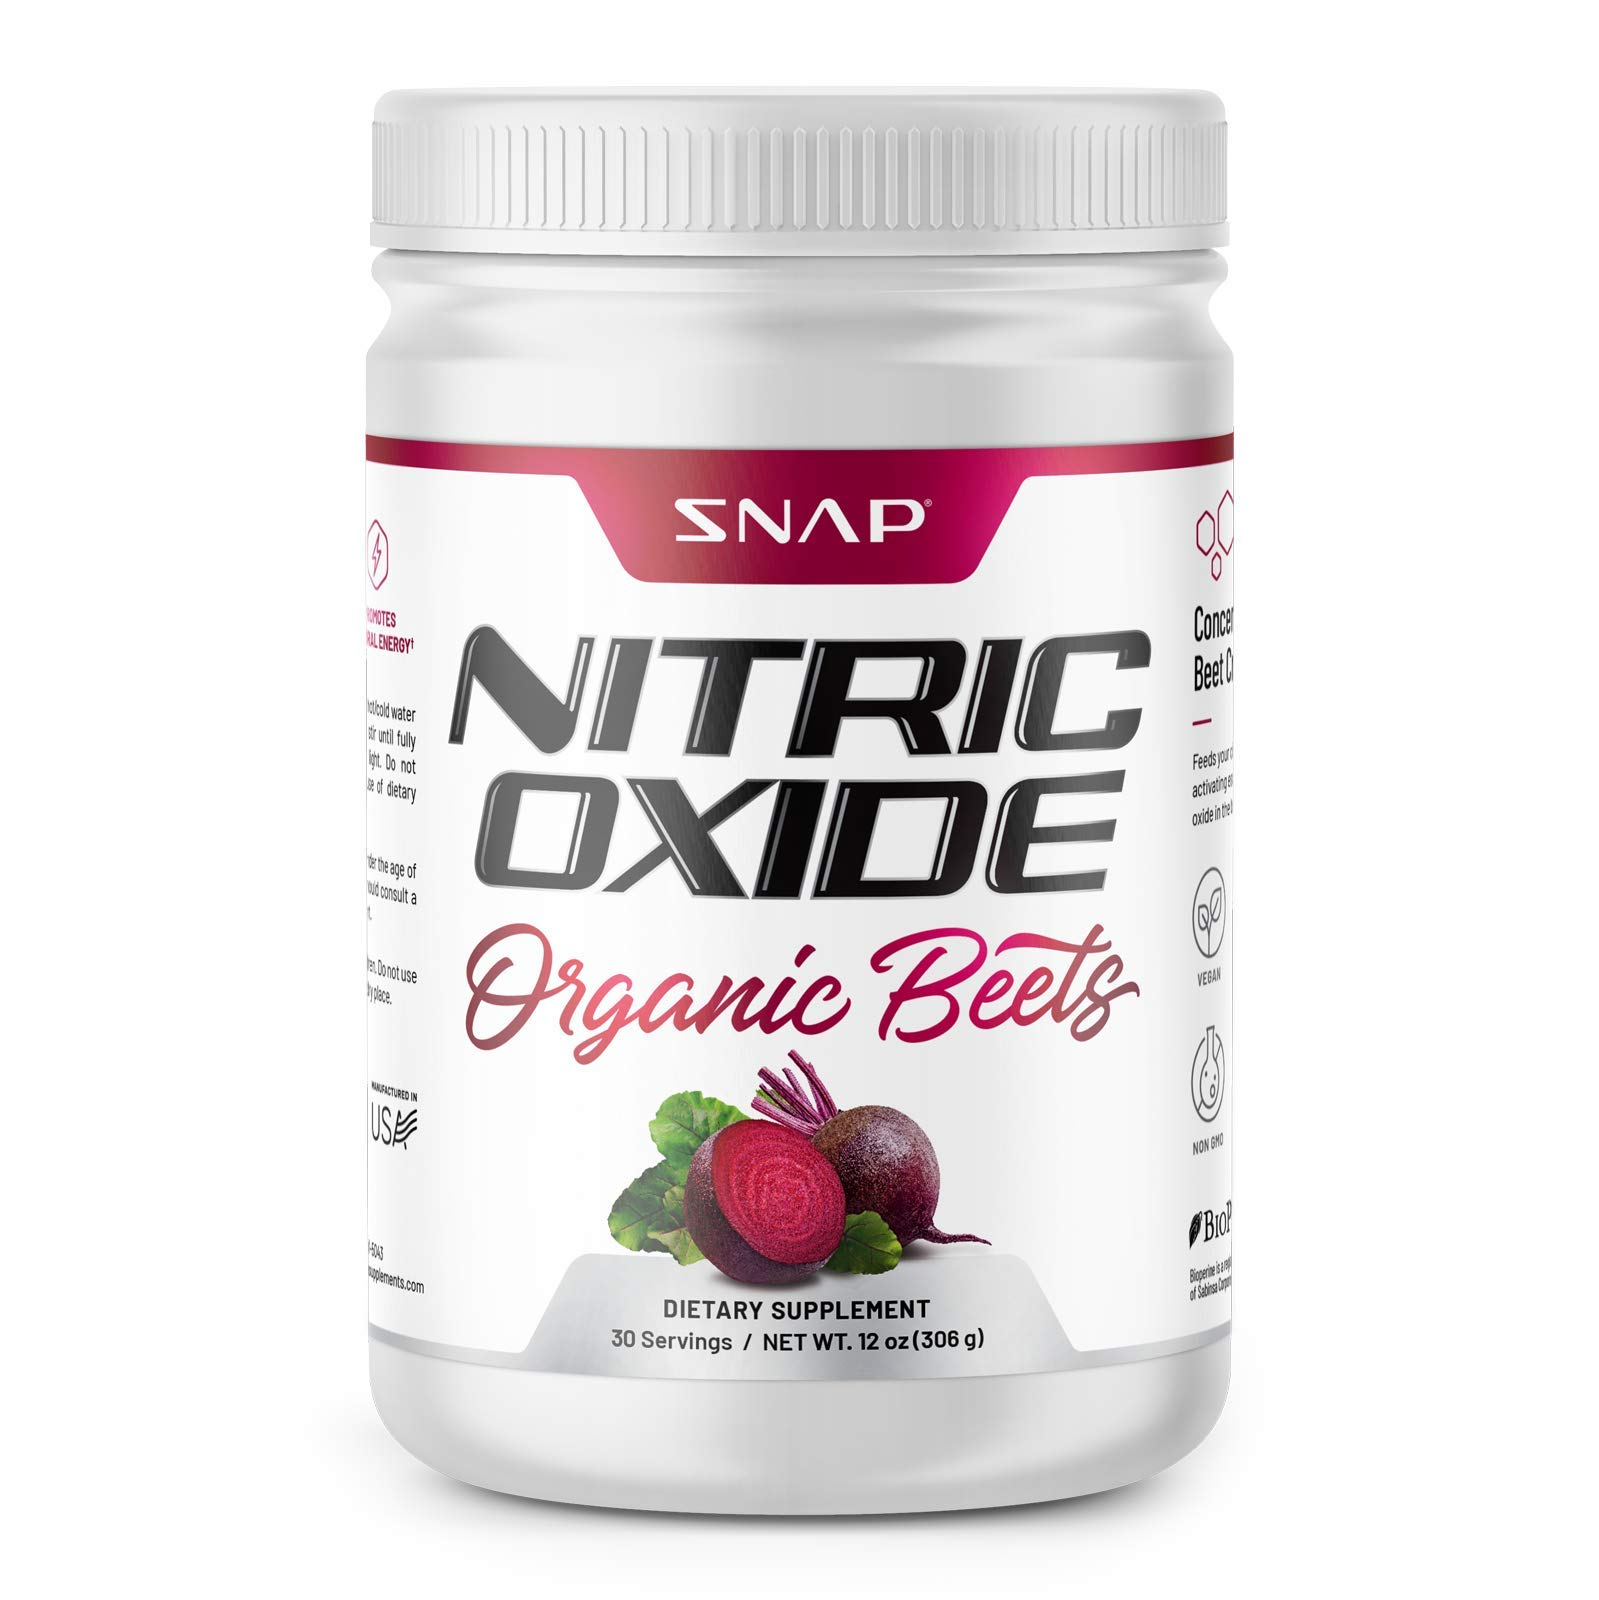 Beet Juice Powder (Organic) Nitric Oxide by Snap Supplements - Blood Flow and Circulation Superfood, Muscle & Heart Health - BCAAs. L Arginine, L Citrulline - 306 Grams! by Snap Supplements